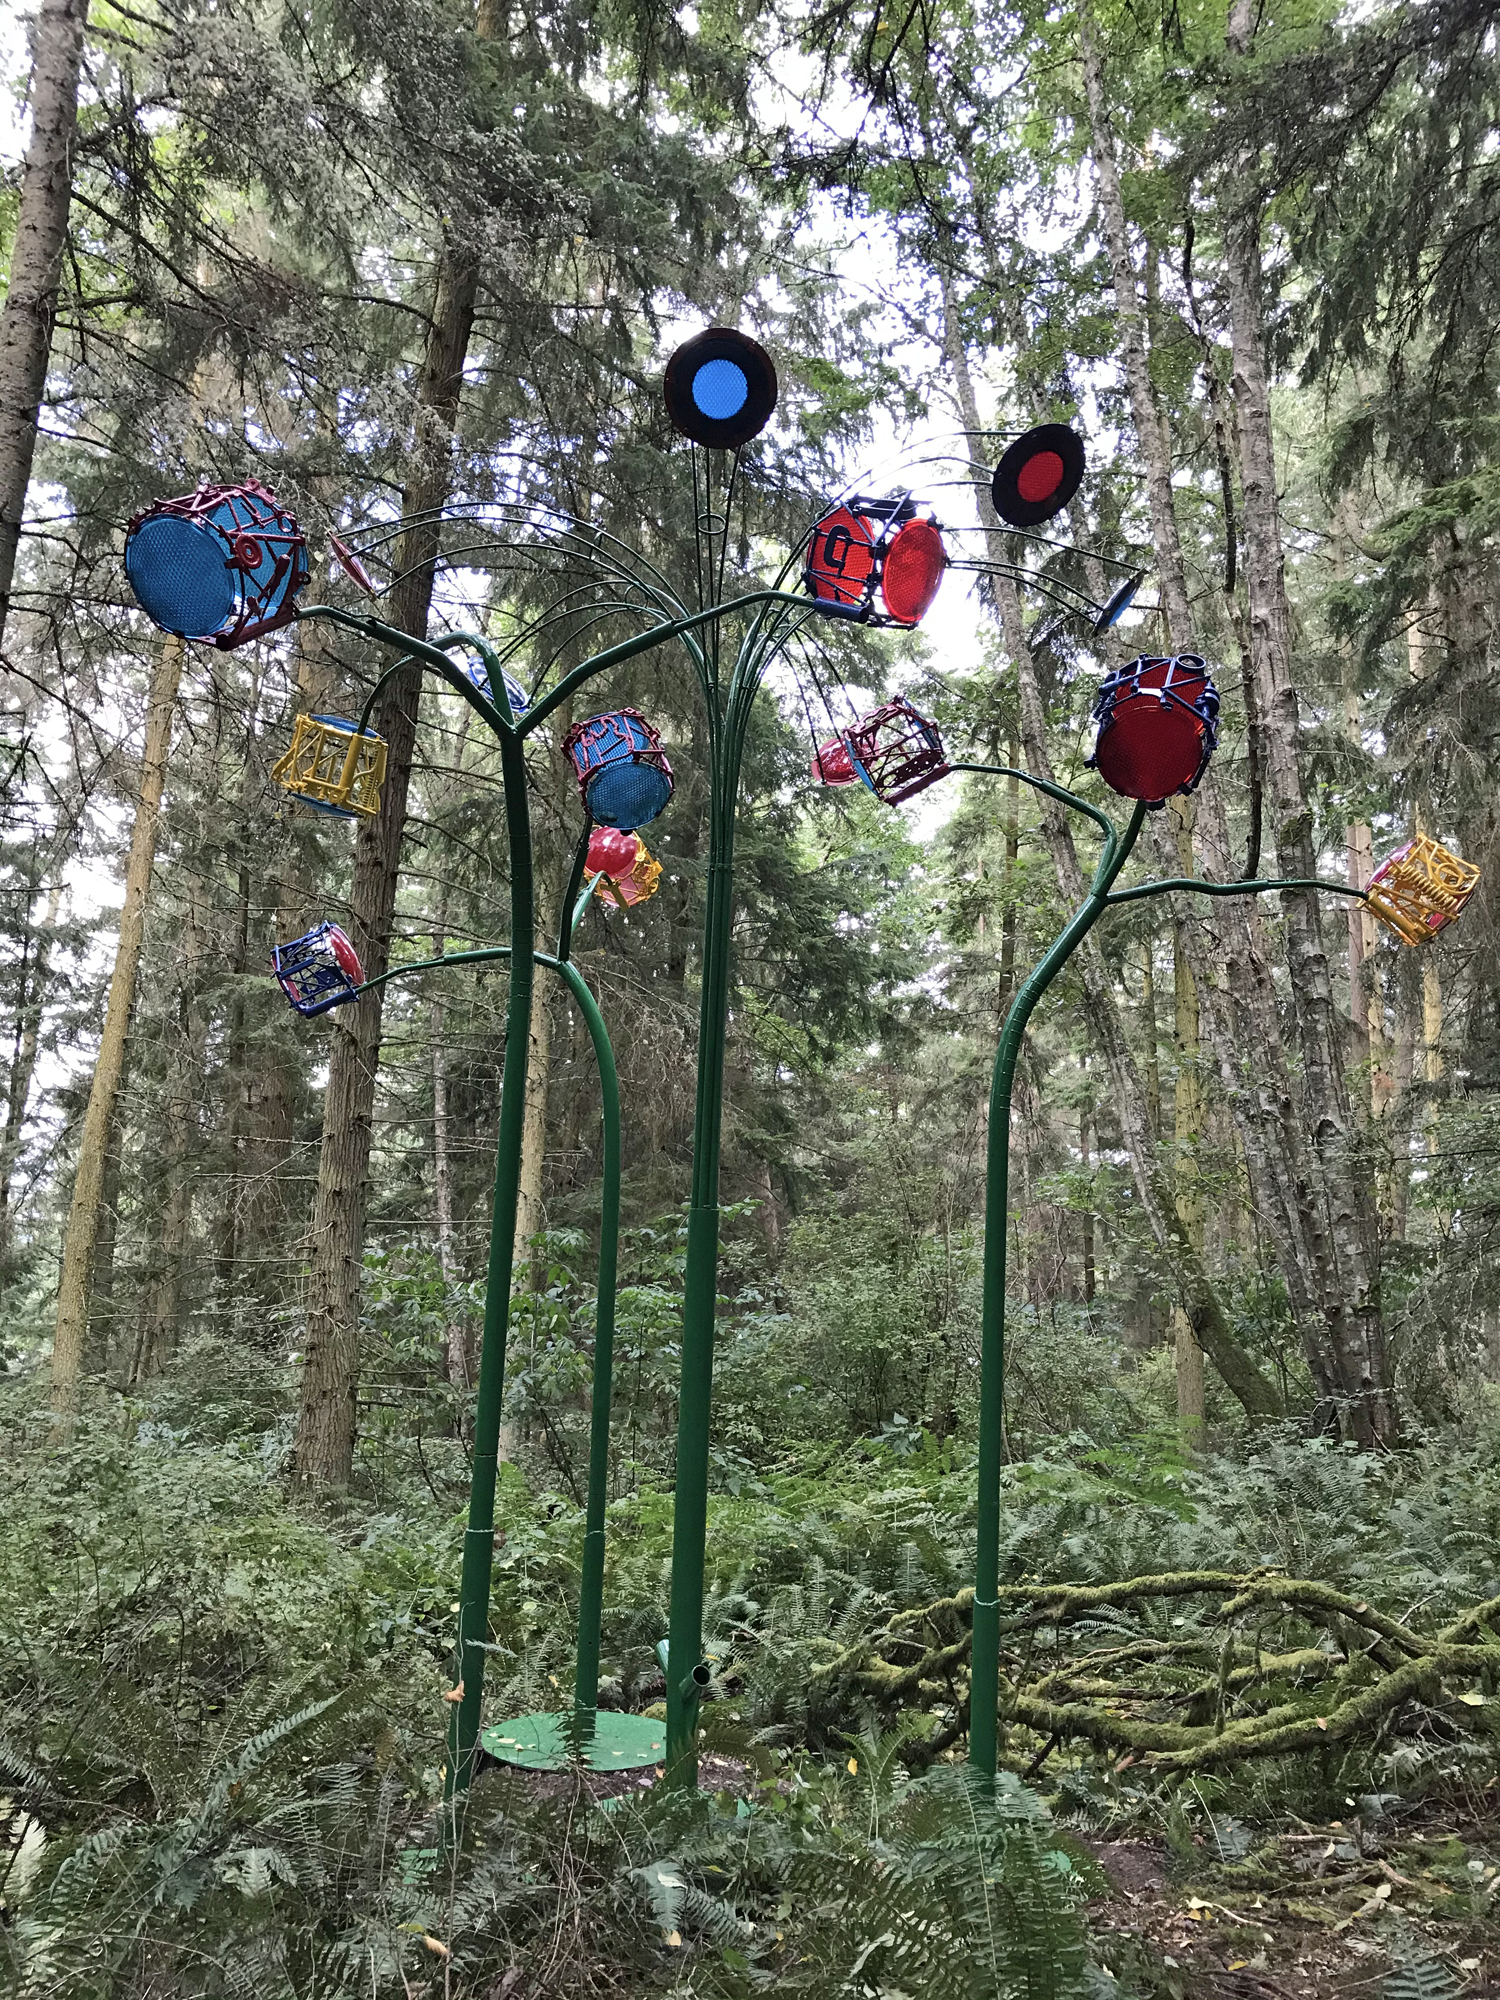 Playa Flowers sculpture by sculptor Jeff Tangen at Price Sculpture Forest